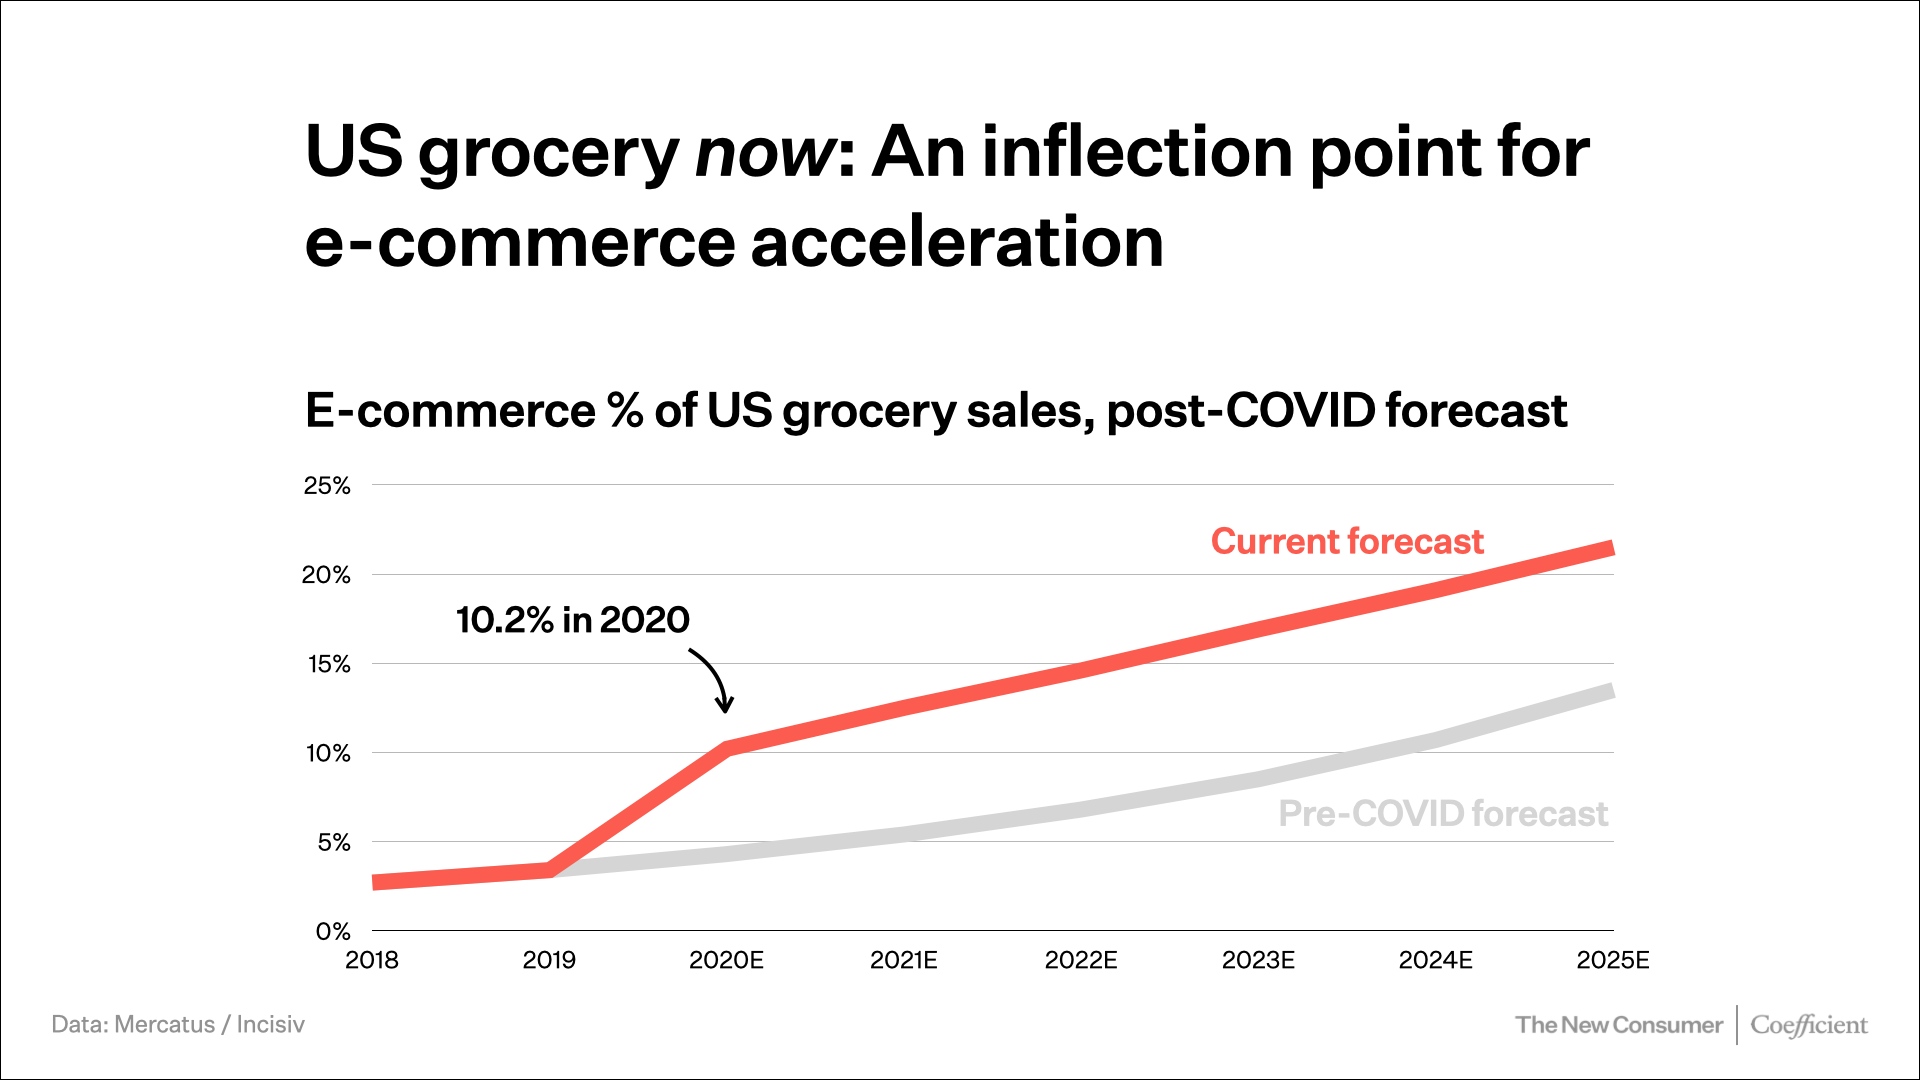 Mercatus online grocery forecast